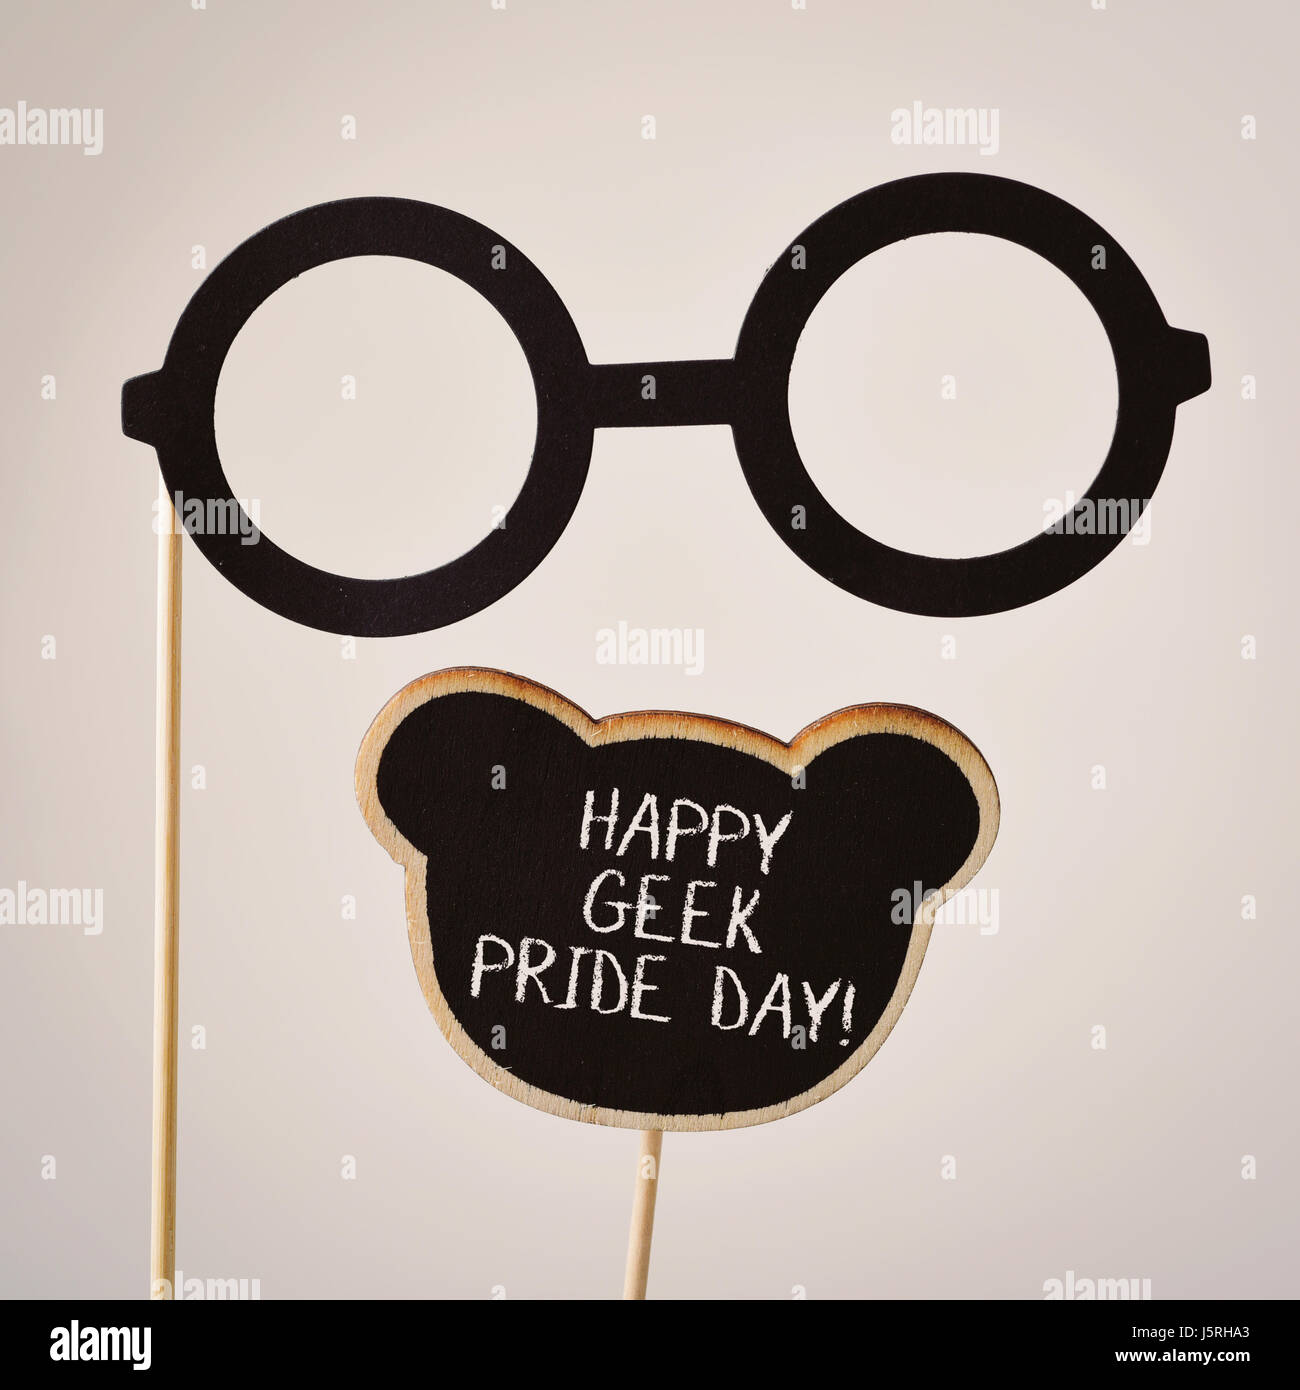 a pair of round-framed eyeglasses attached to a wooden handle and the text happy geek pride written in a black signboard, - Stock Image